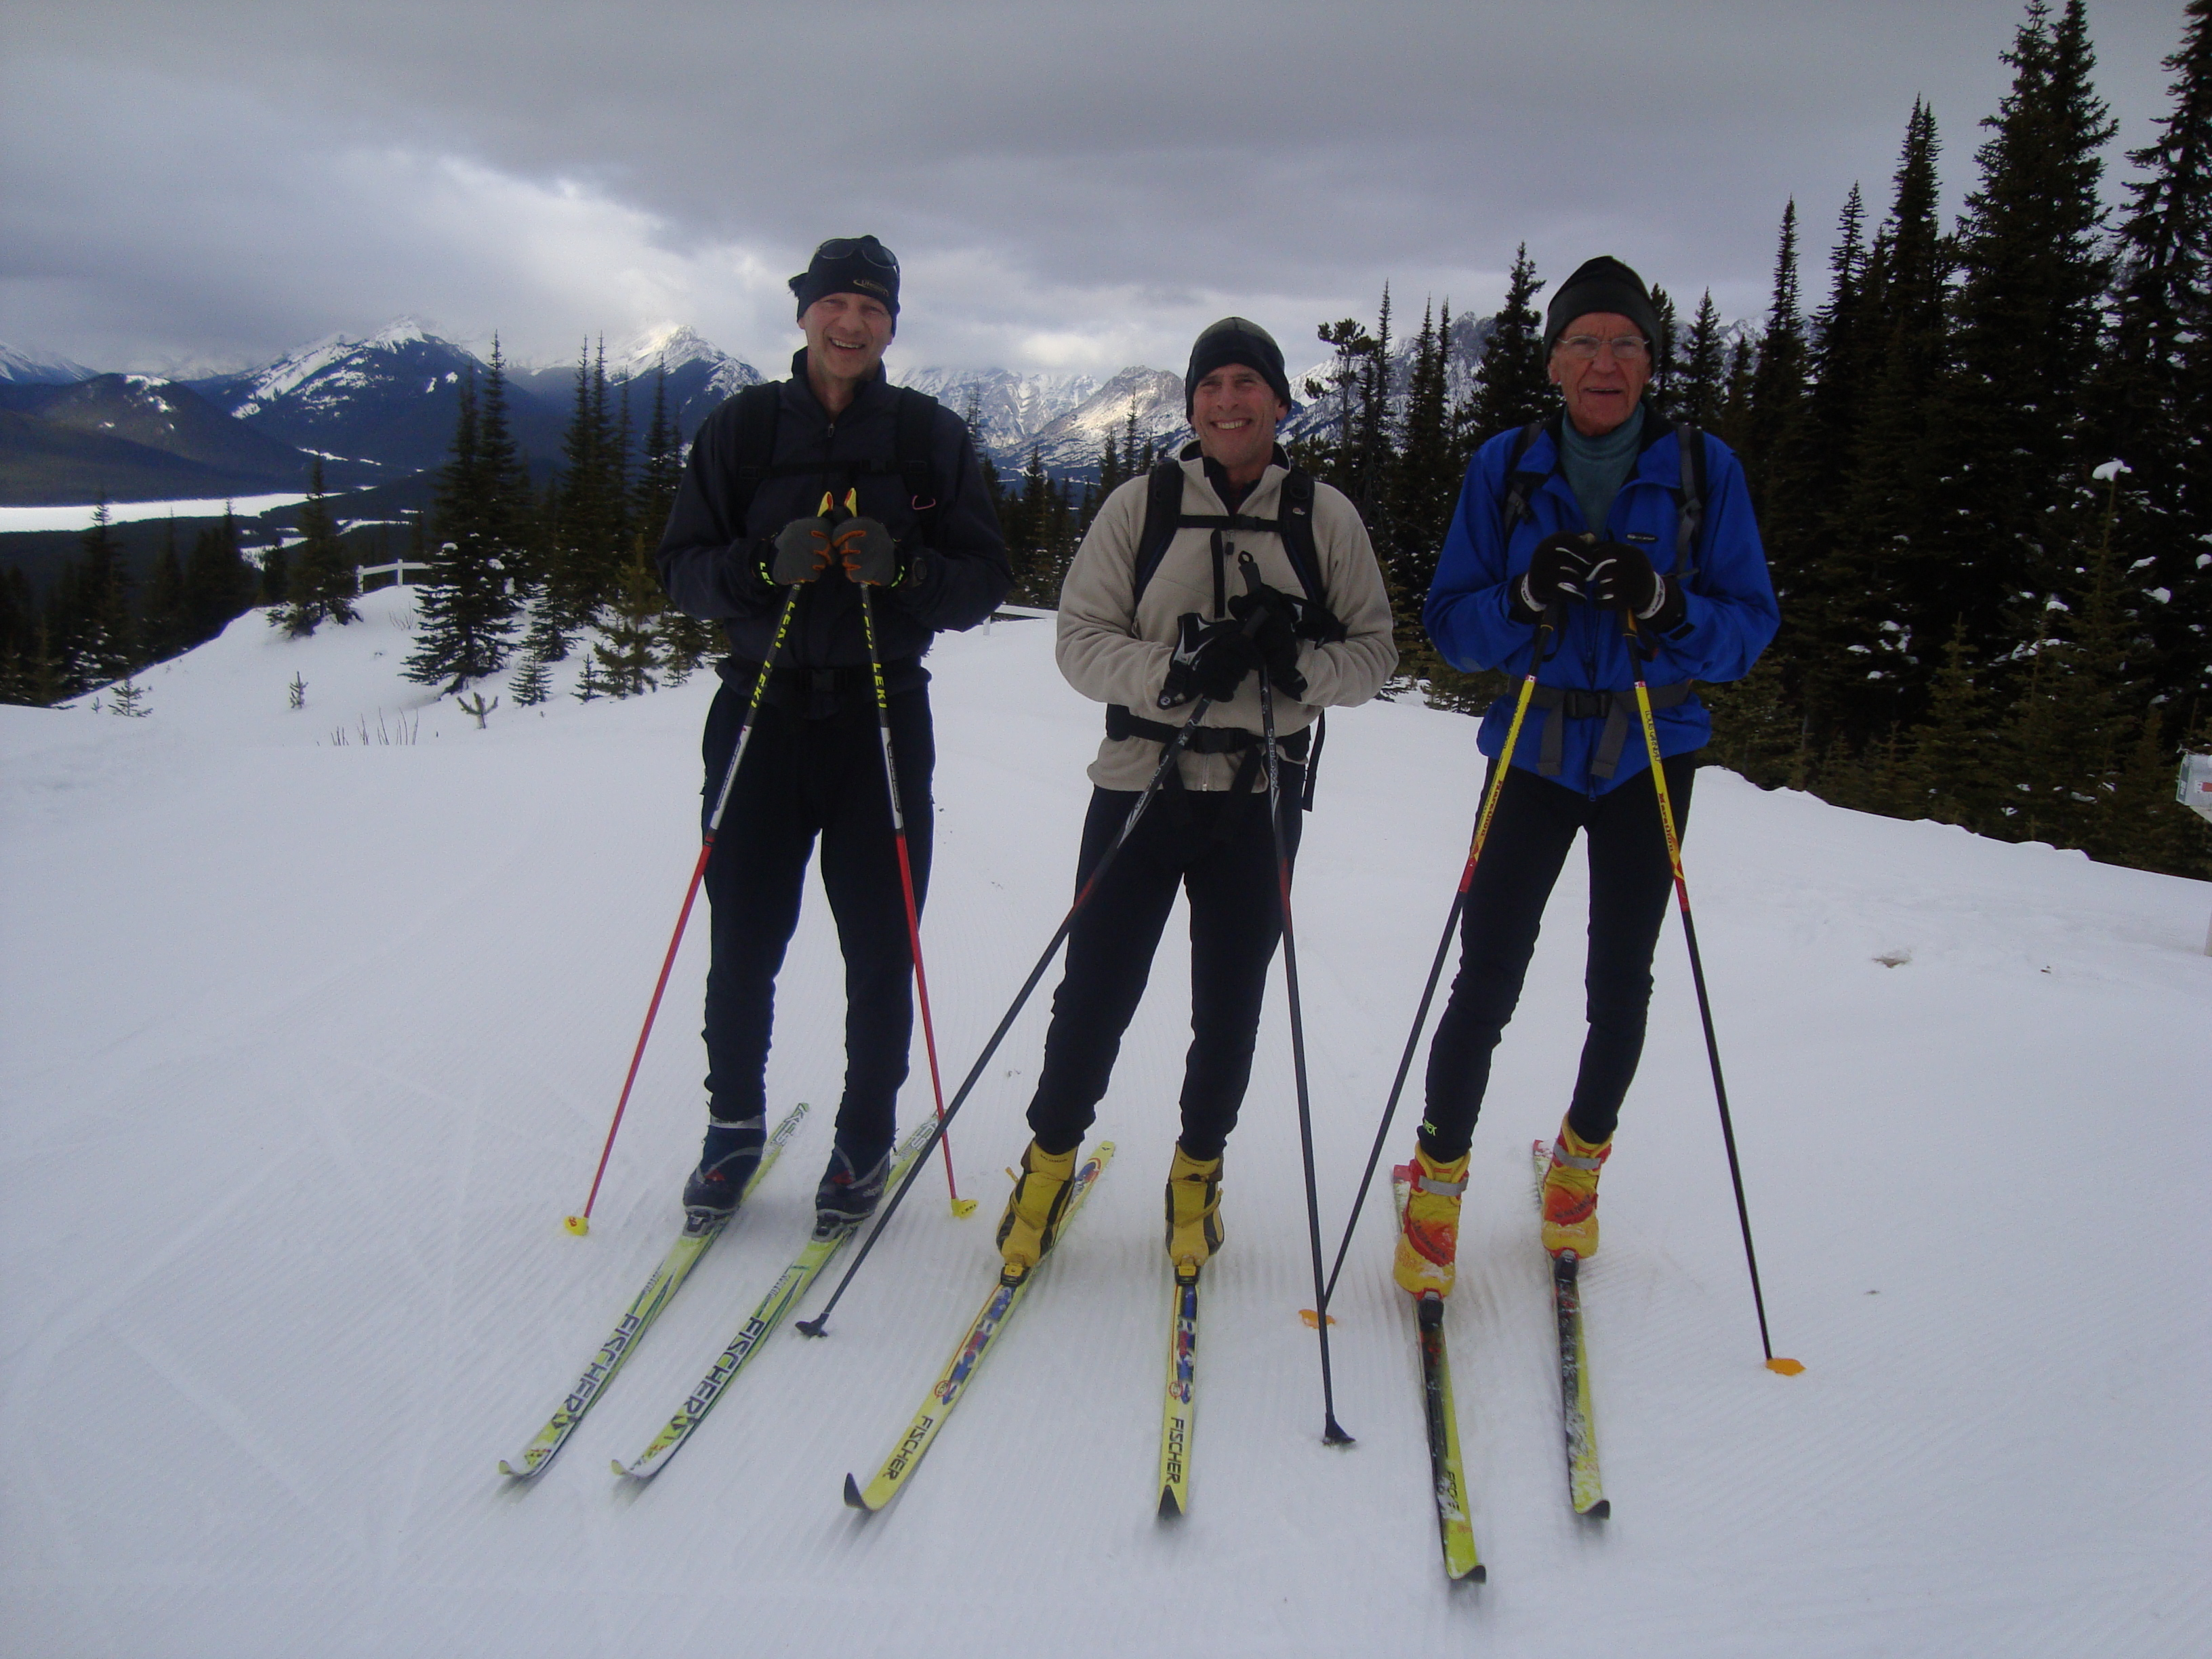 Bob, Chip and Vic at Kananaskis Fire Lookout